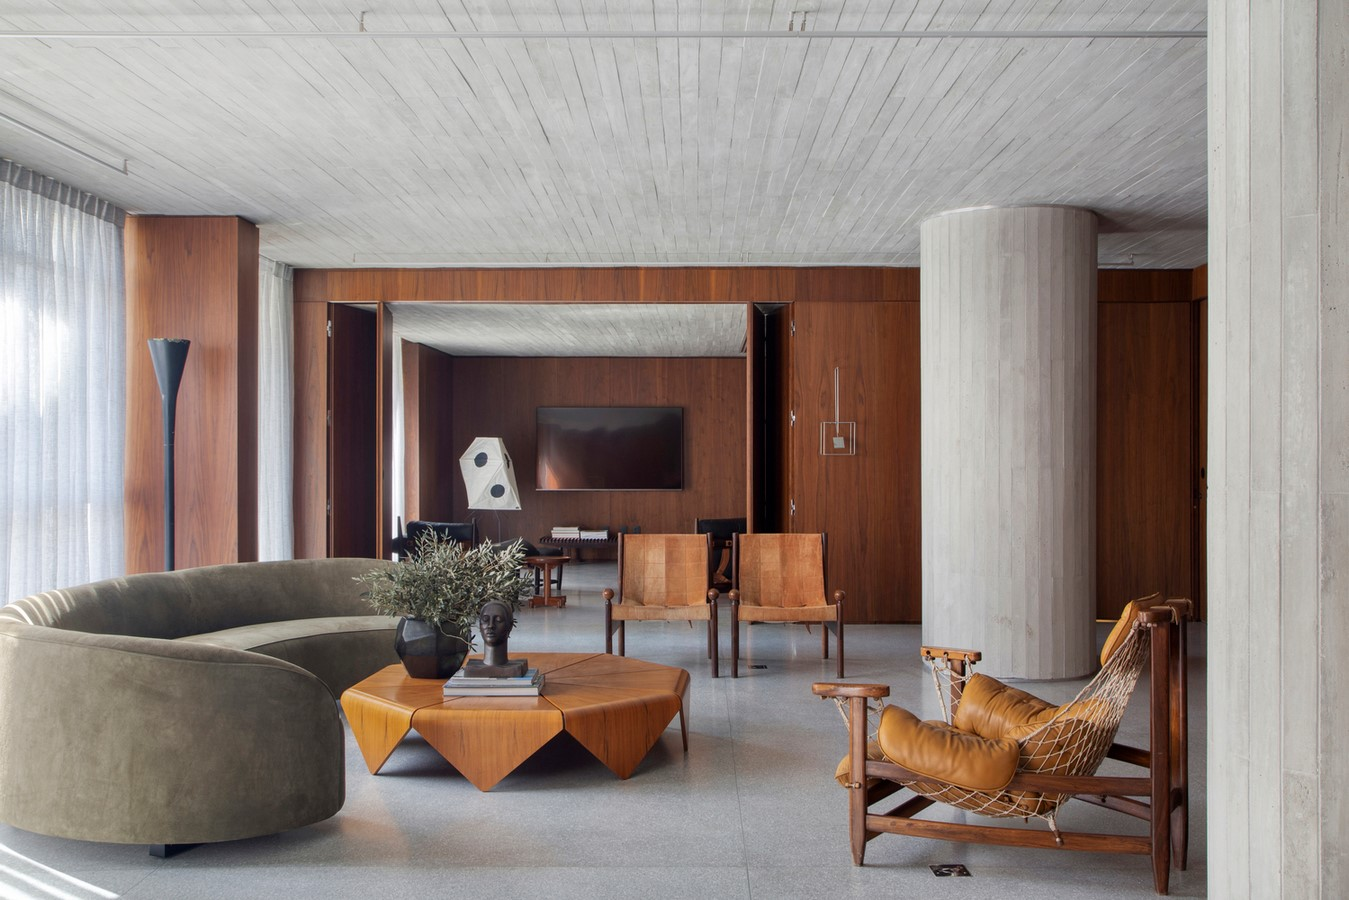 50 Living rooms enhanced by concrete - Sheet48